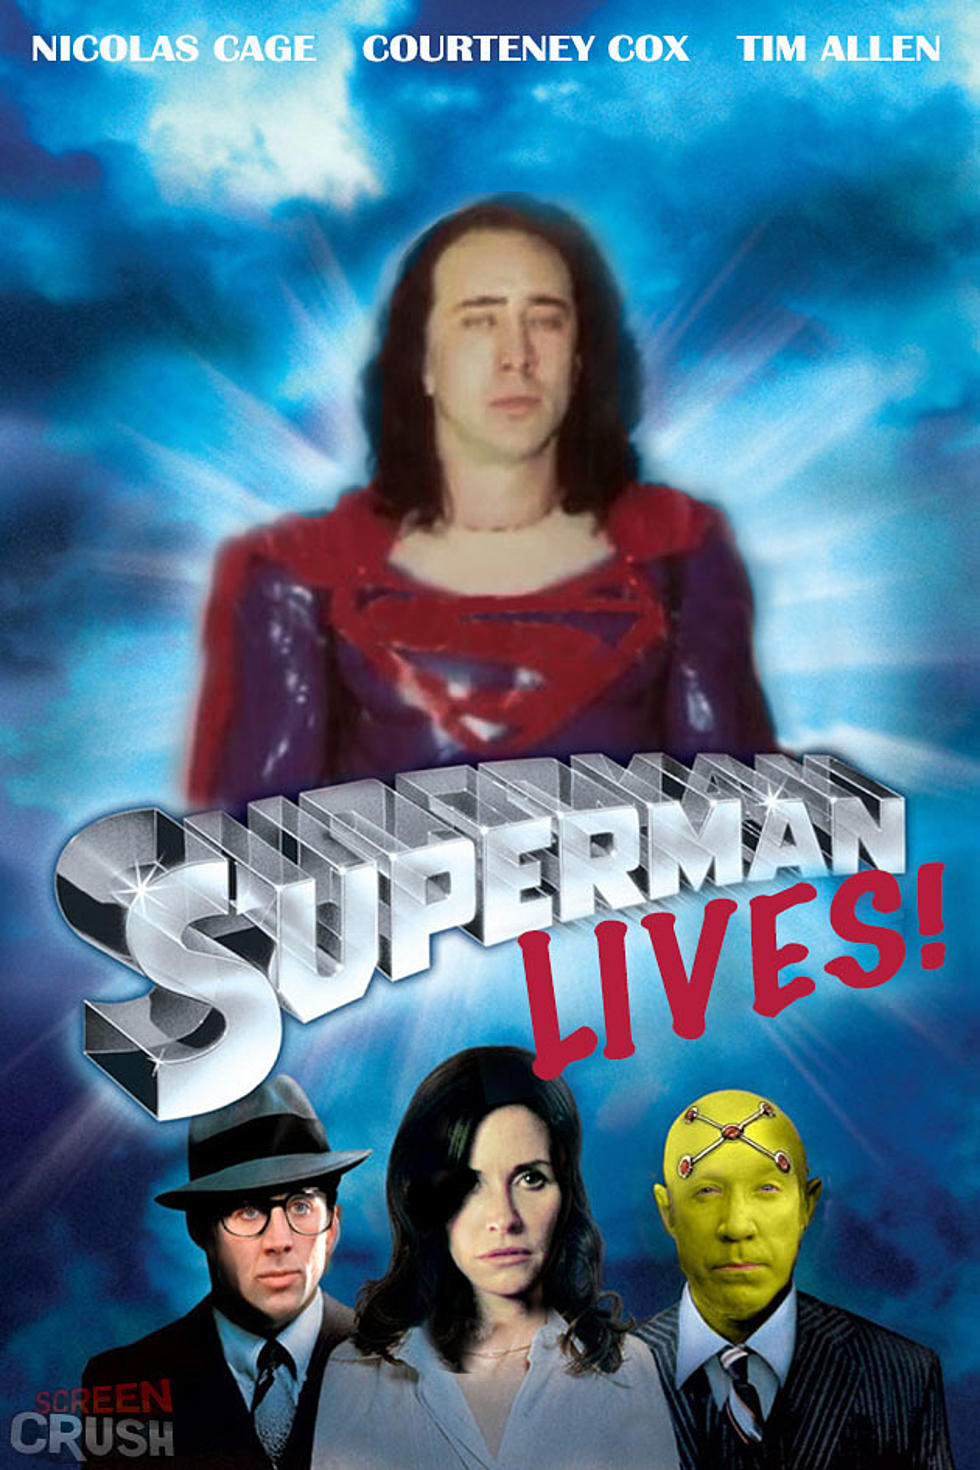 Image result for nic cage fake poster